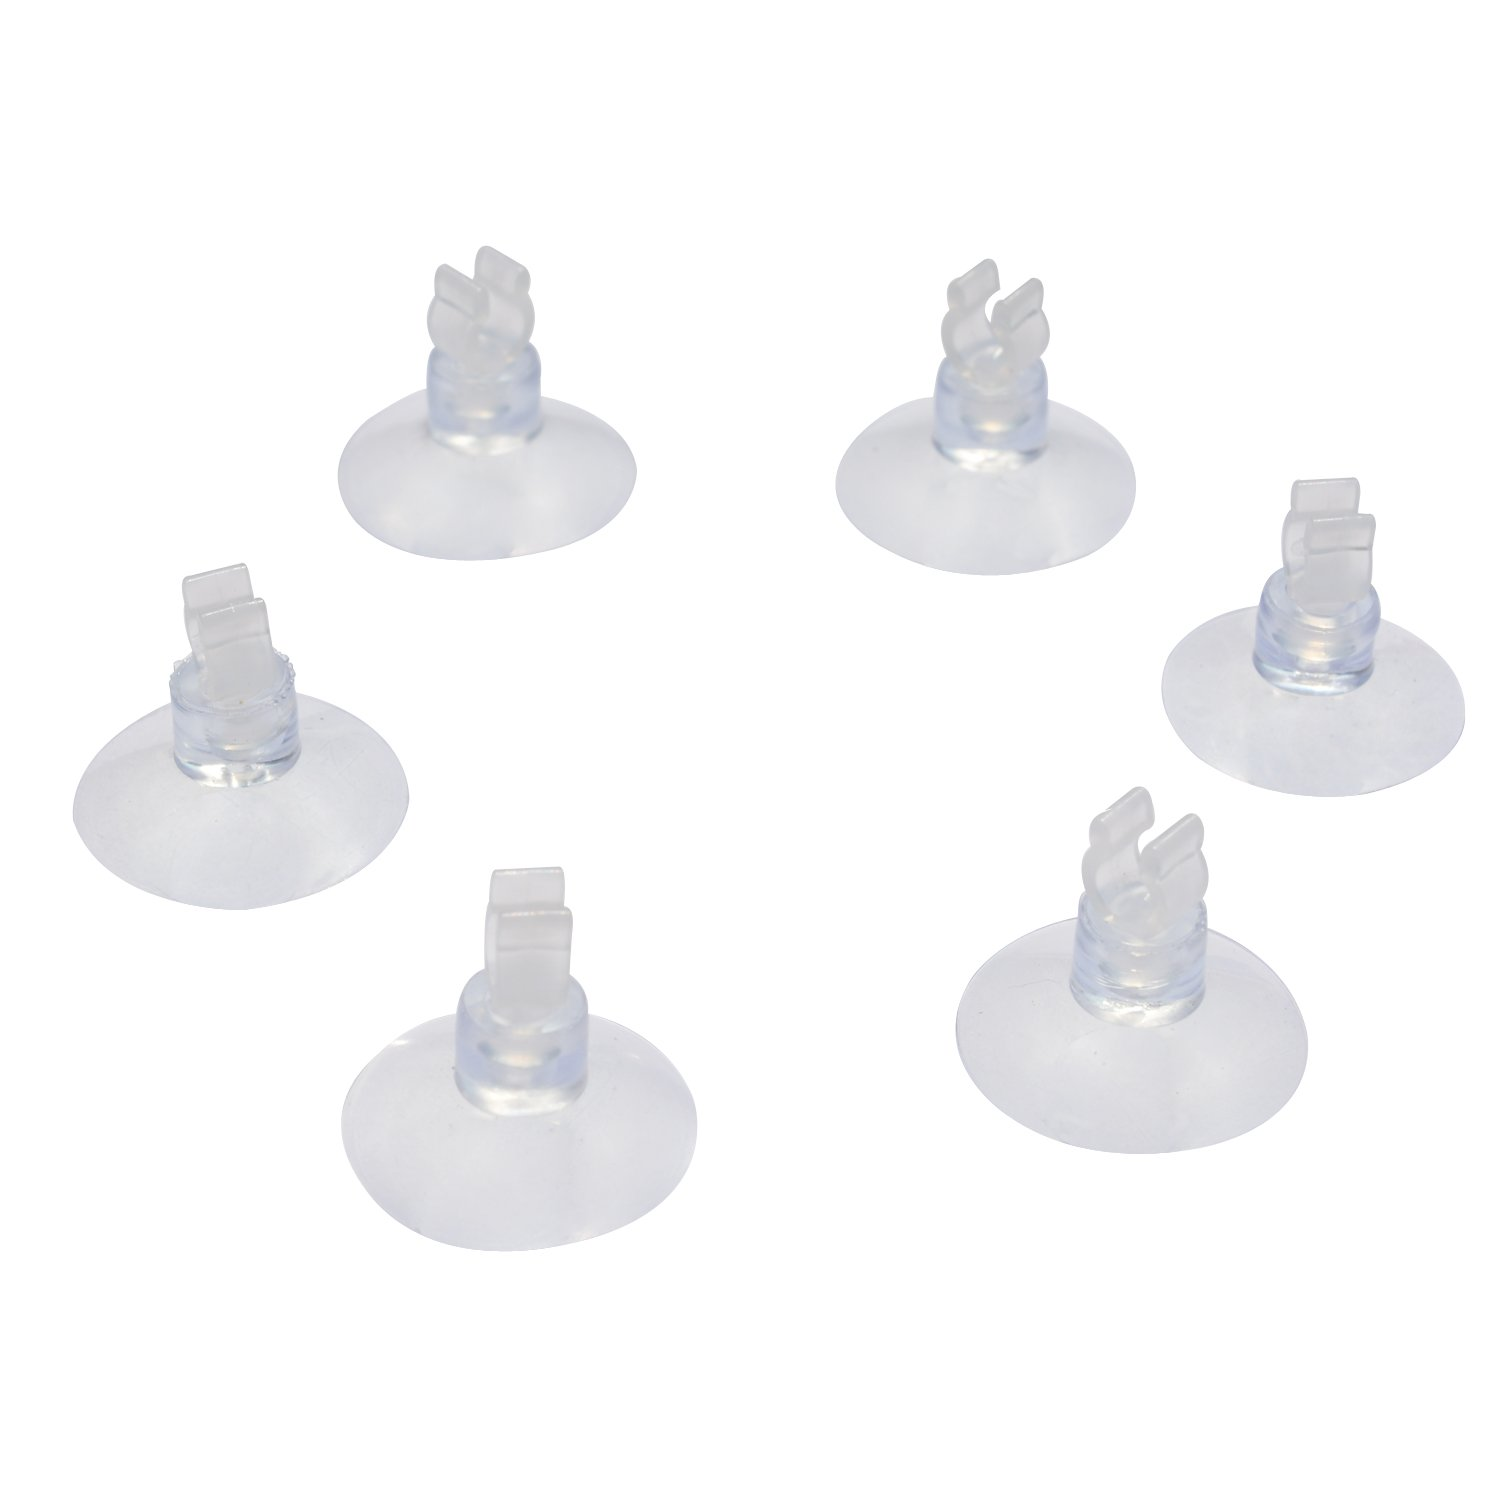 Pawfly 20-Piece Aquarium Suction Cup Clips Airline Tube Holders/Clamps for Fish Tank, Clear 0.2''